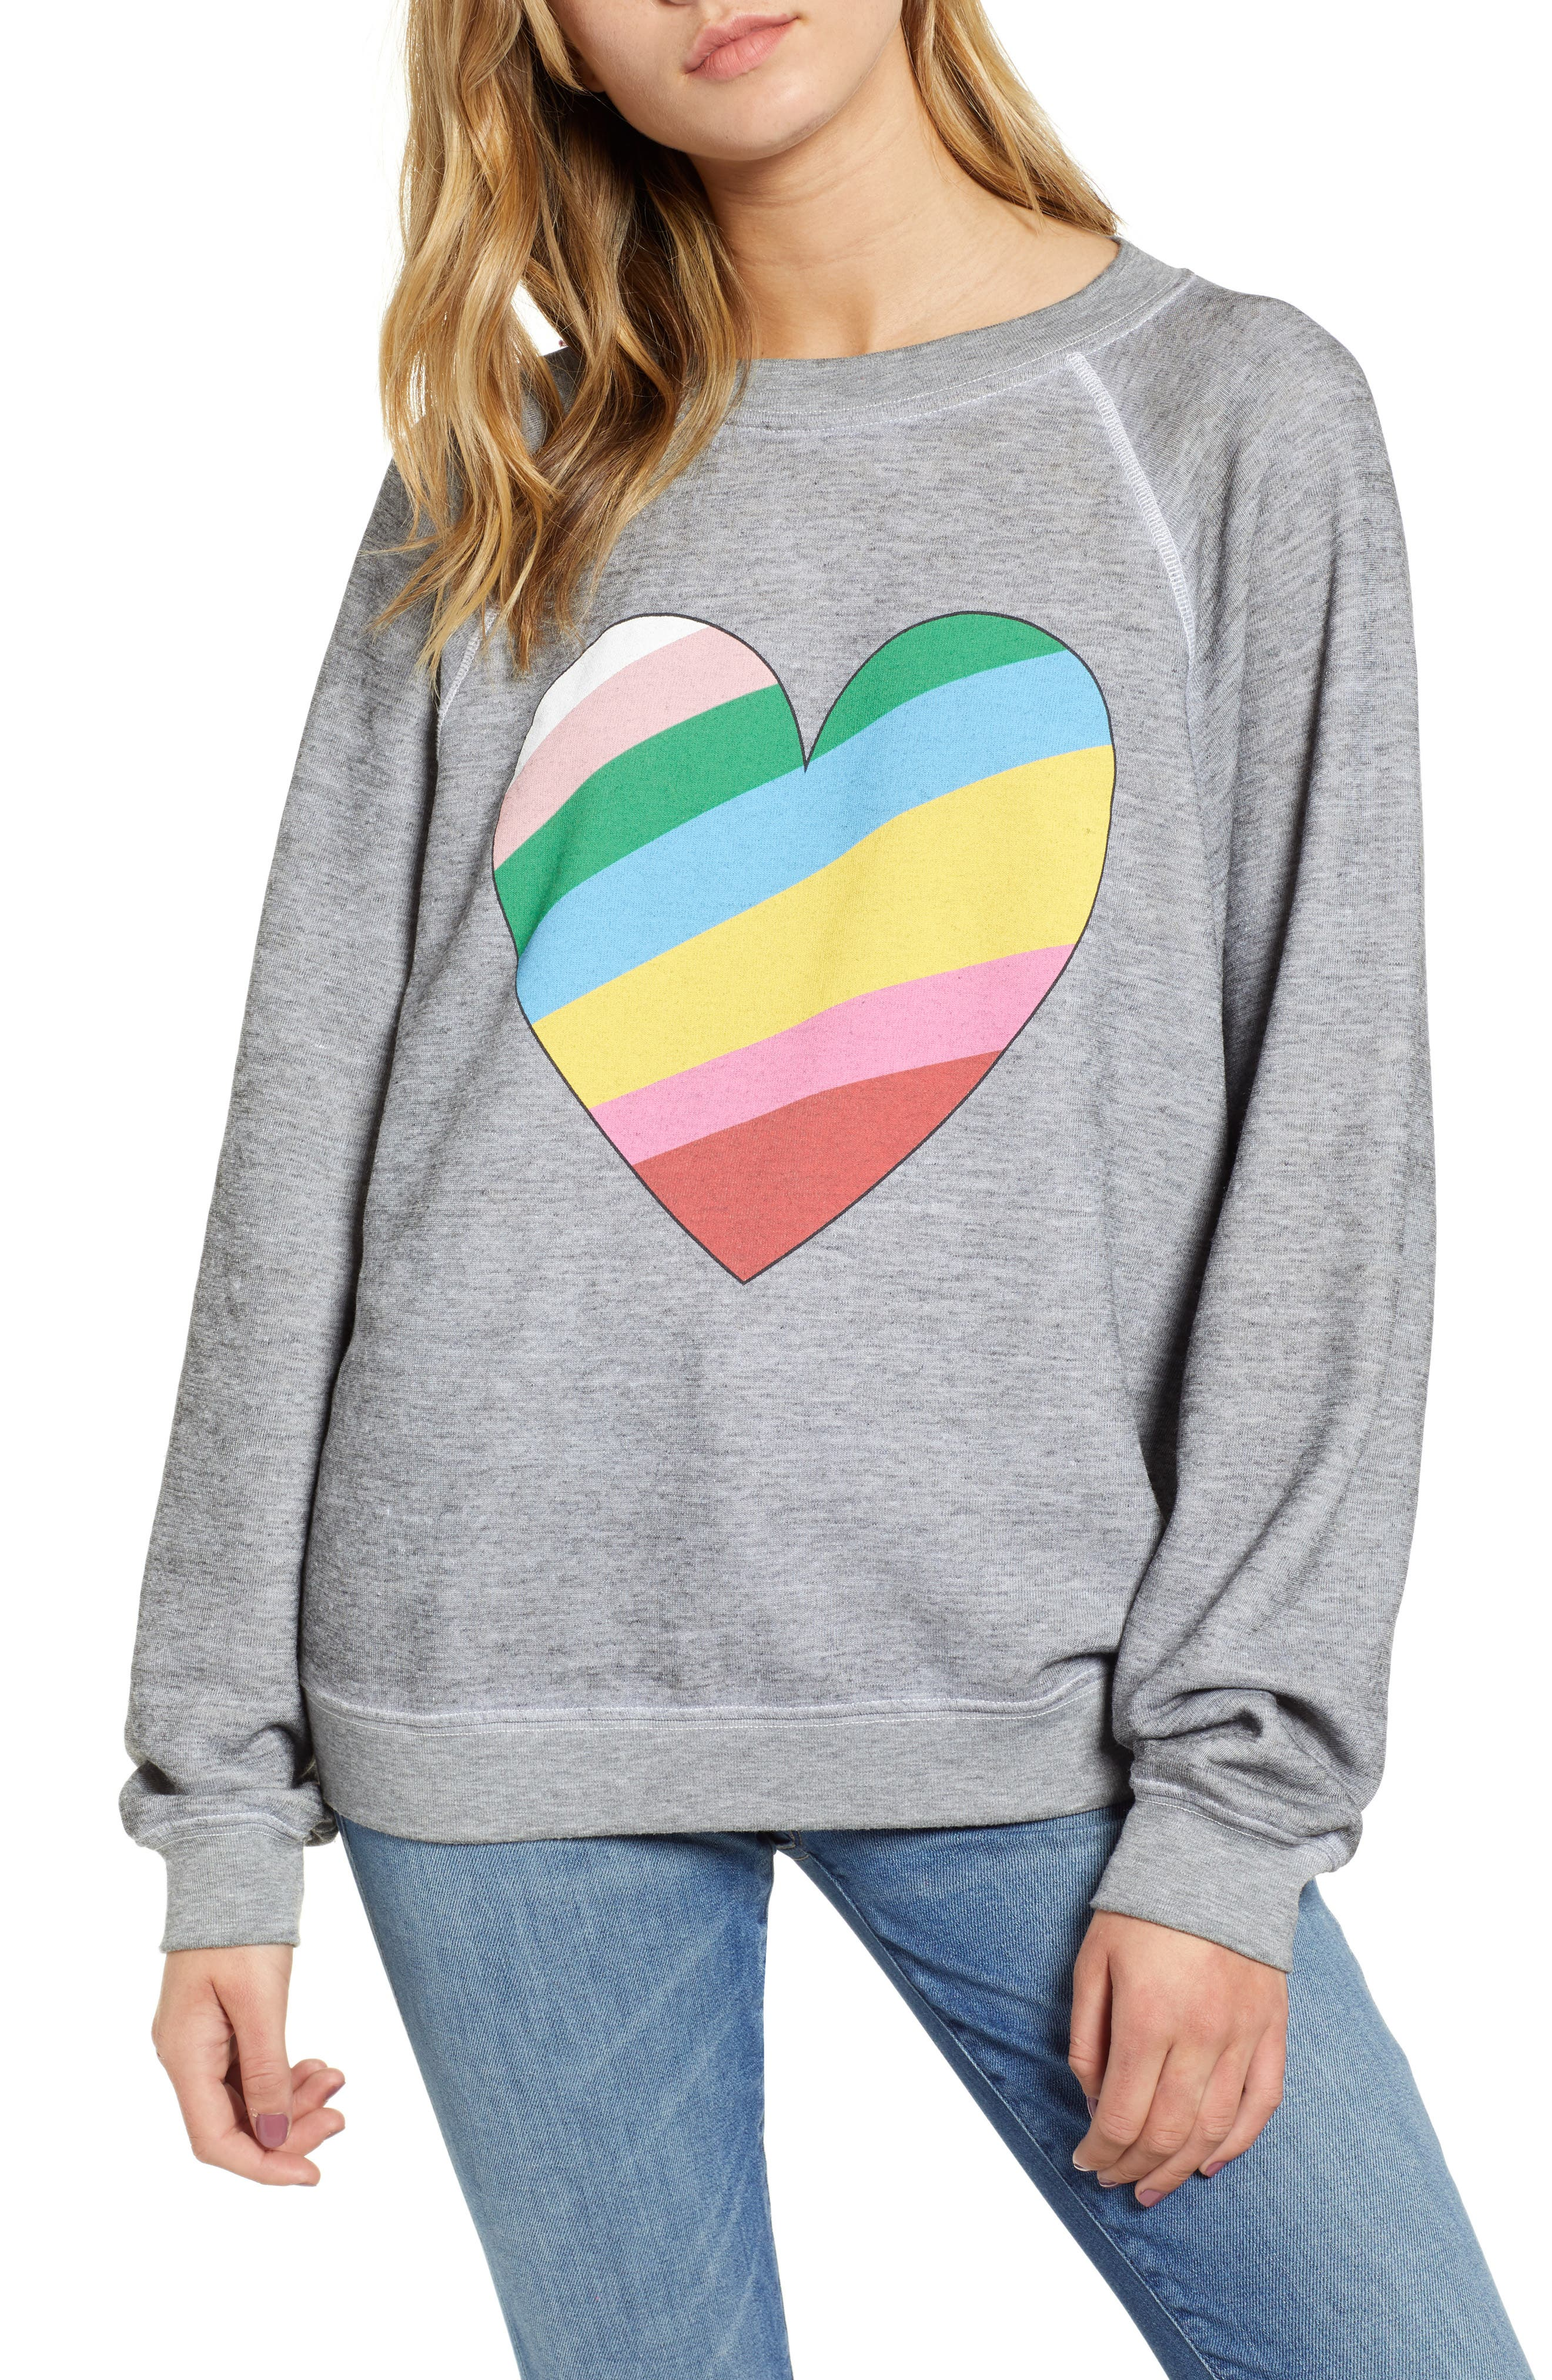 Sommers Love Hearts Sweatshirt,                             Main thumbnail 1, color,                             HEATHER